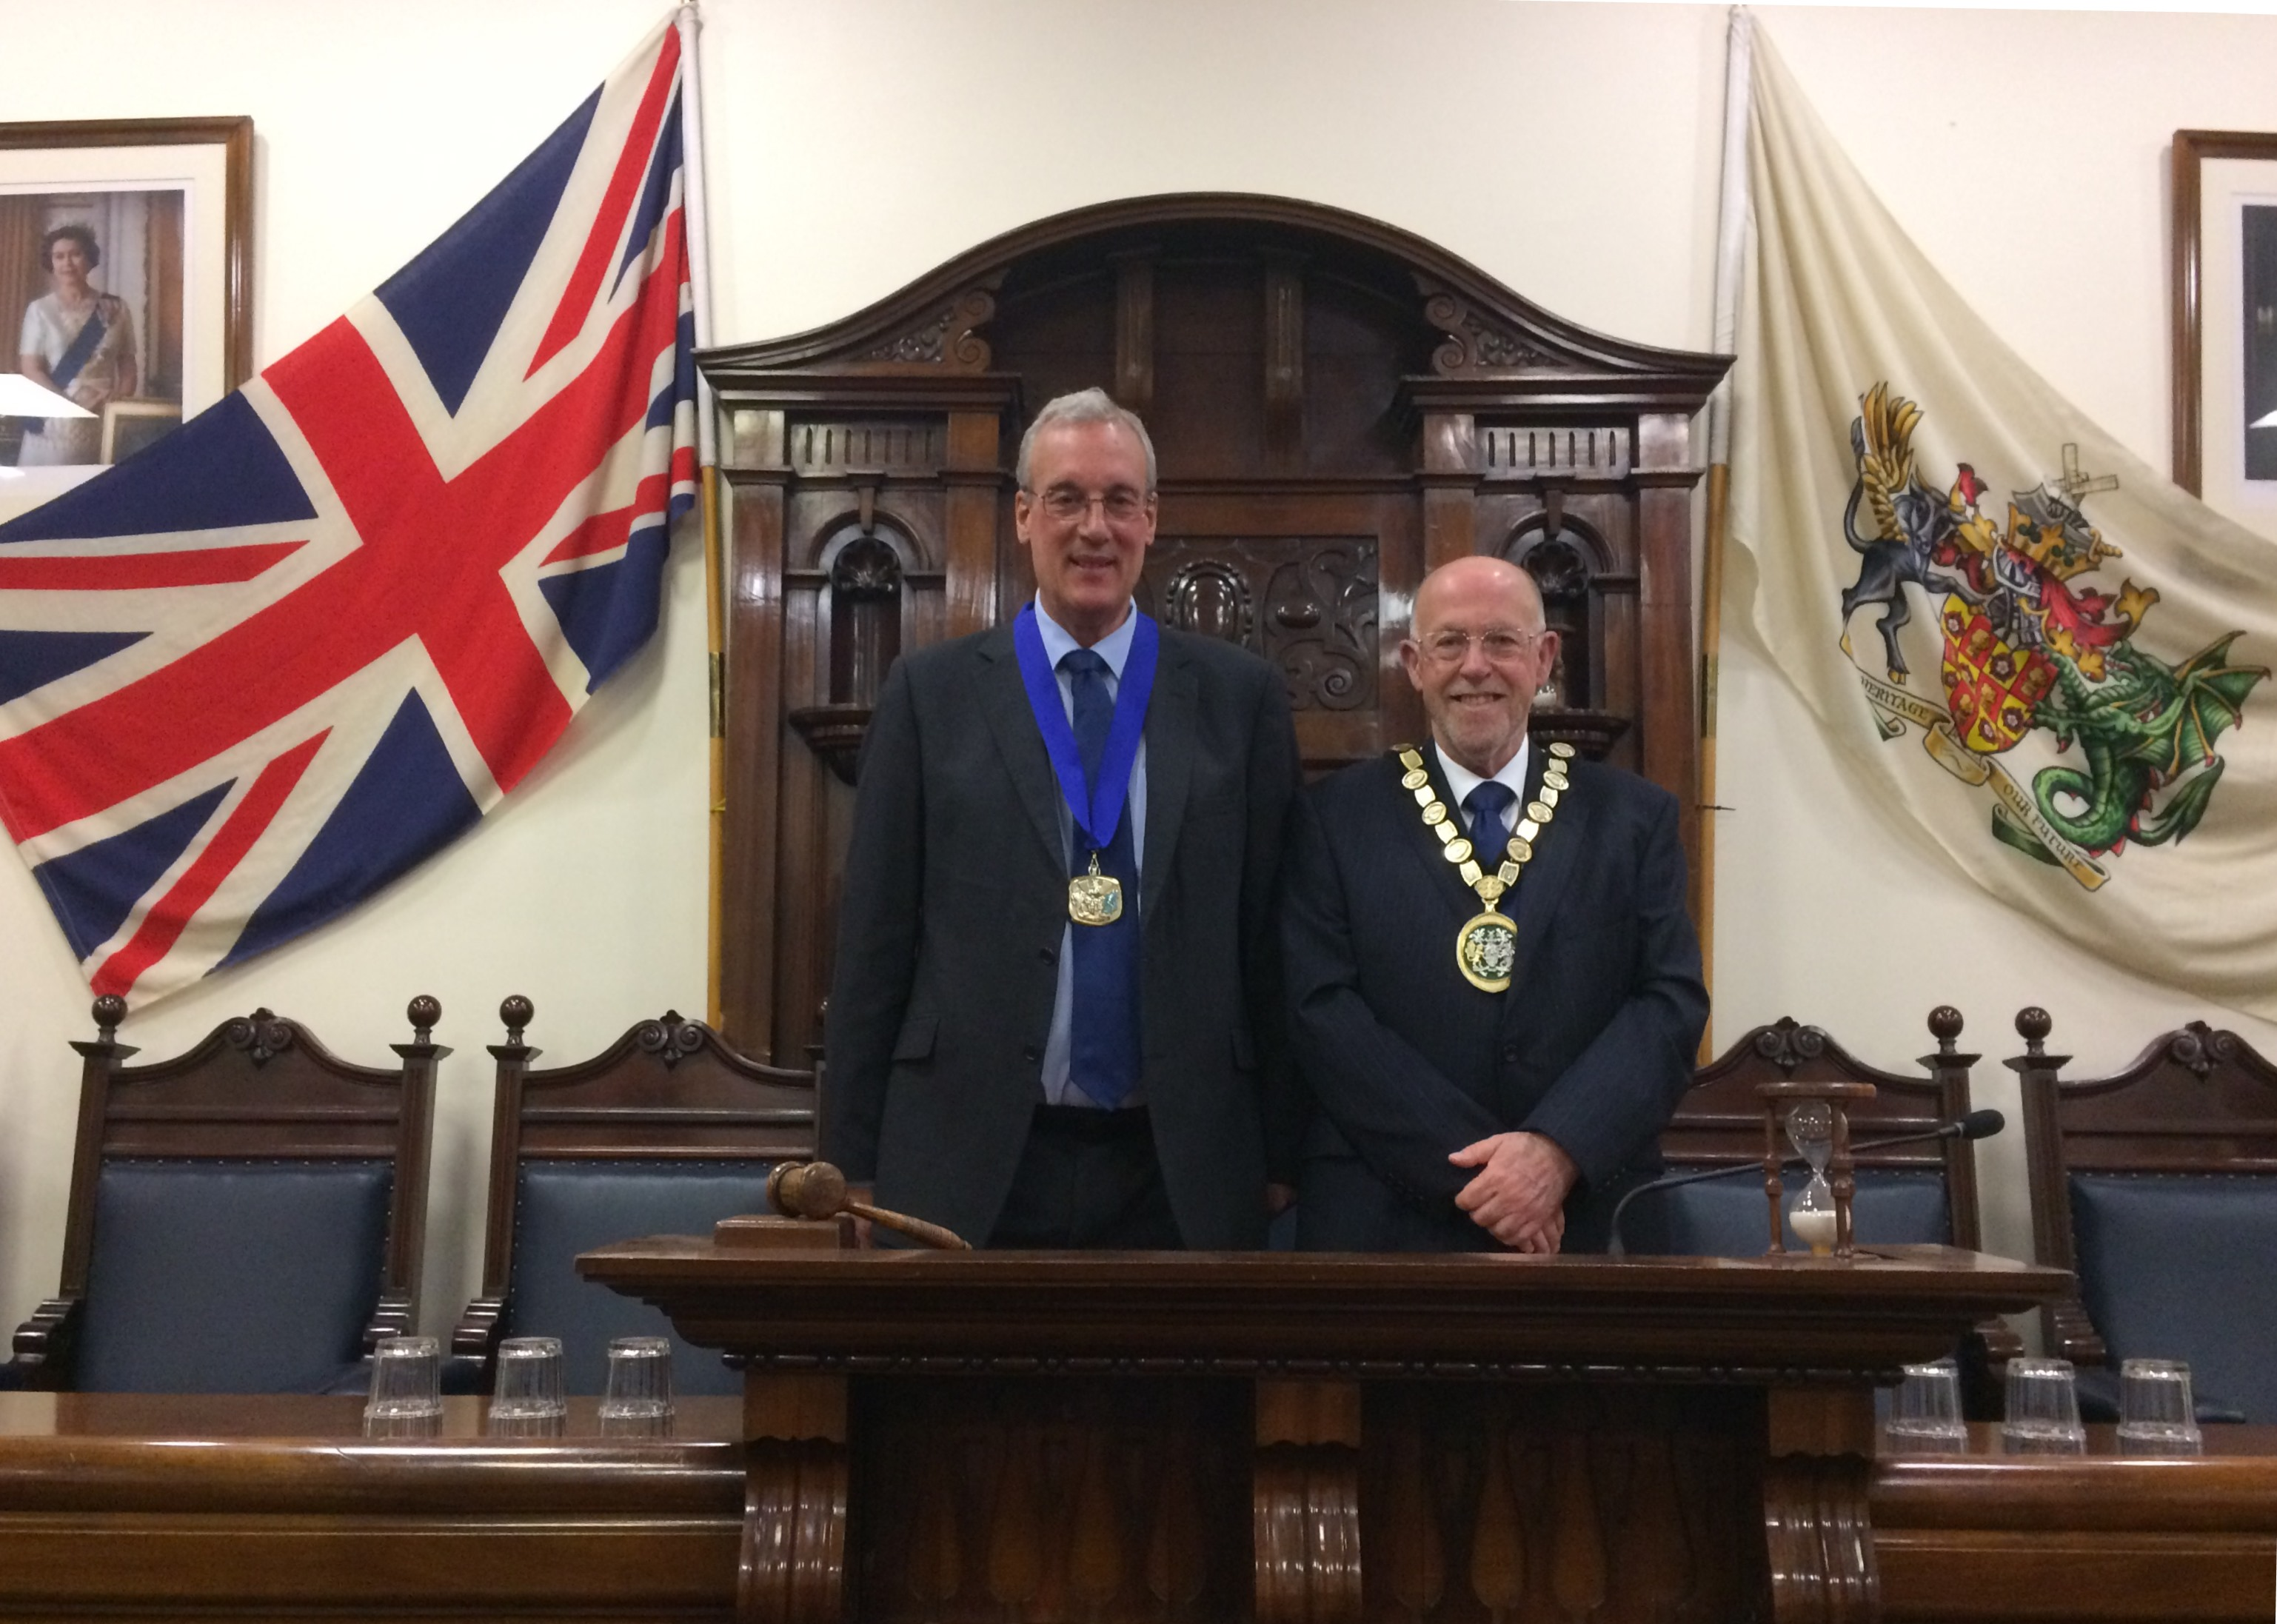 Chairman - Cllr Lesley Butcher and Vice Chairman Cllr David Merrick